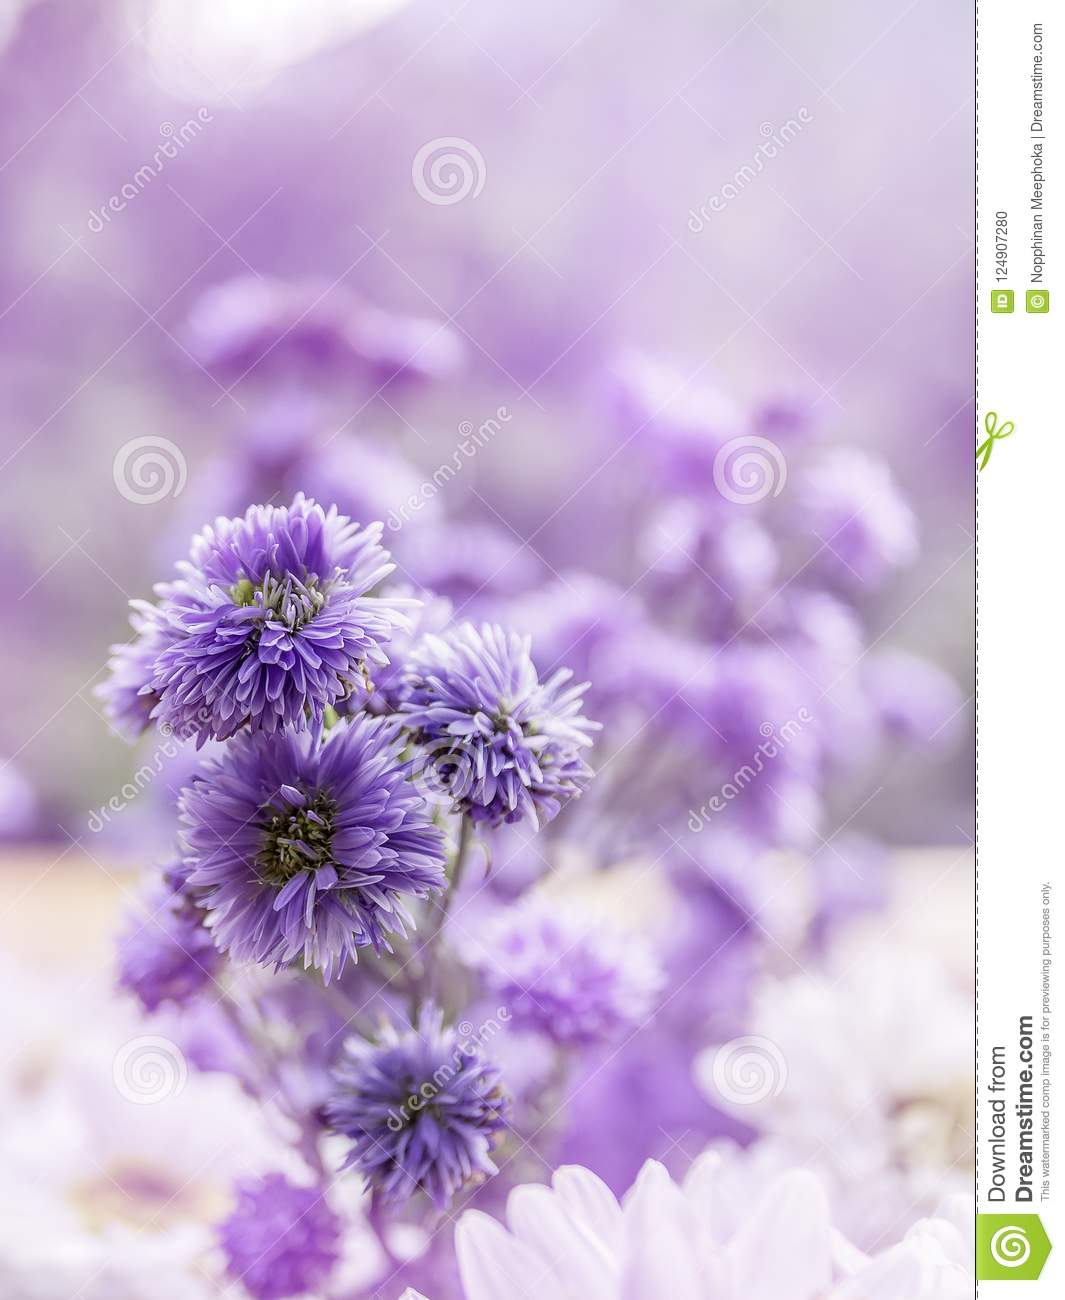 Flowers backgroundcloseup beautiful purple flowers in nature stock download flowers backgroundcloseup beautiful purple flowers in nature stock photo image of izmirmasajfo